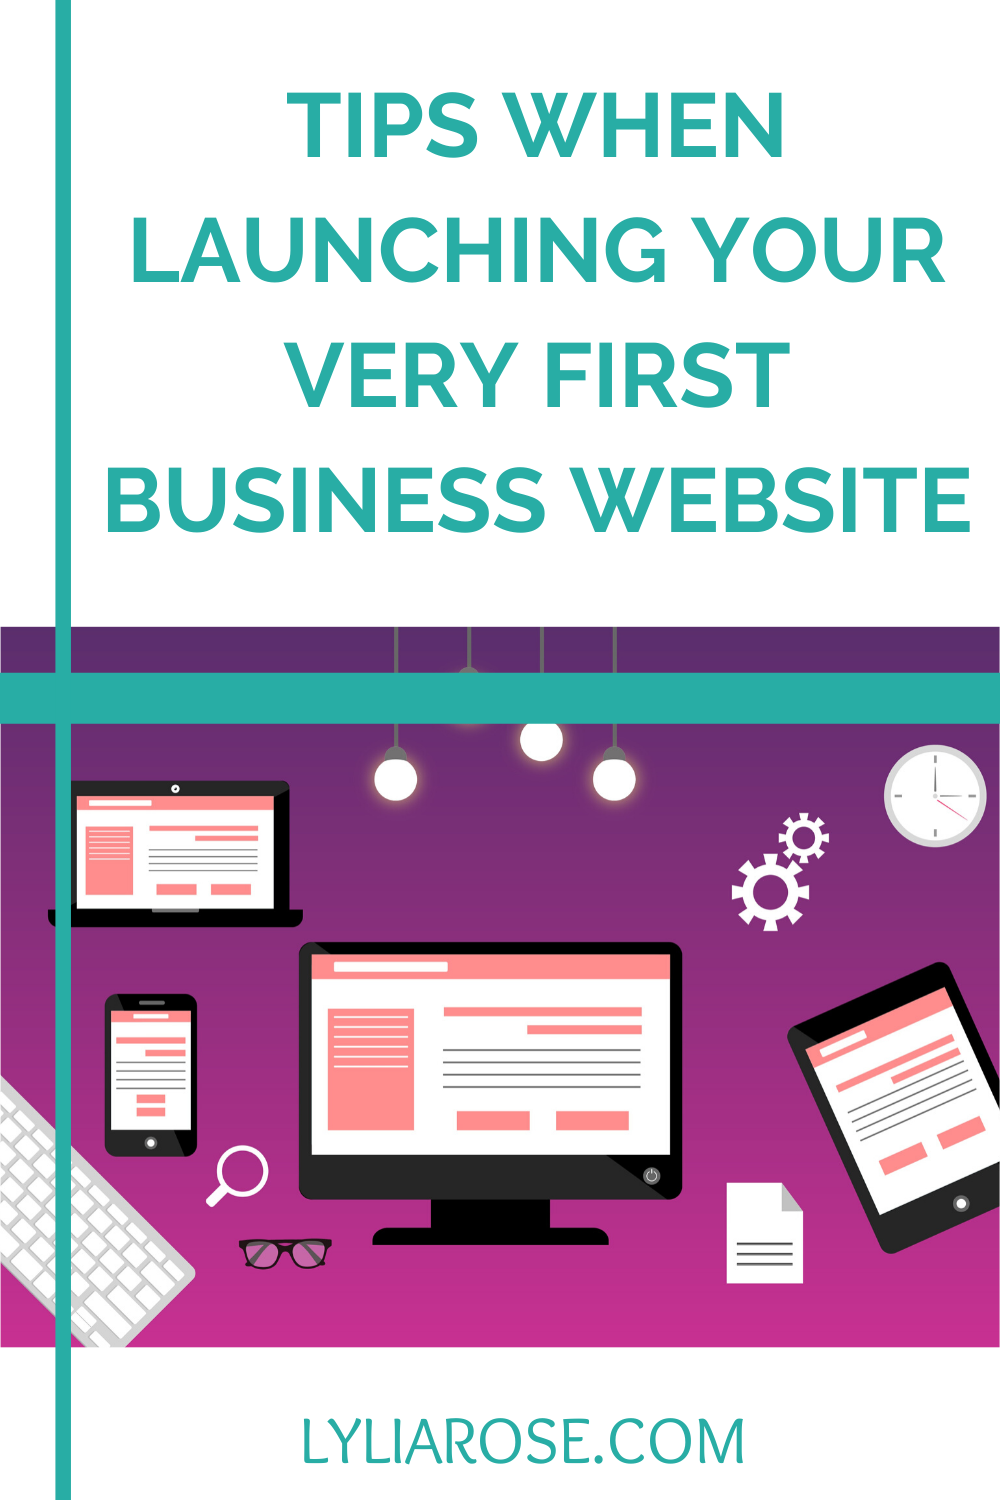 Tips when launching your very first business website (2)